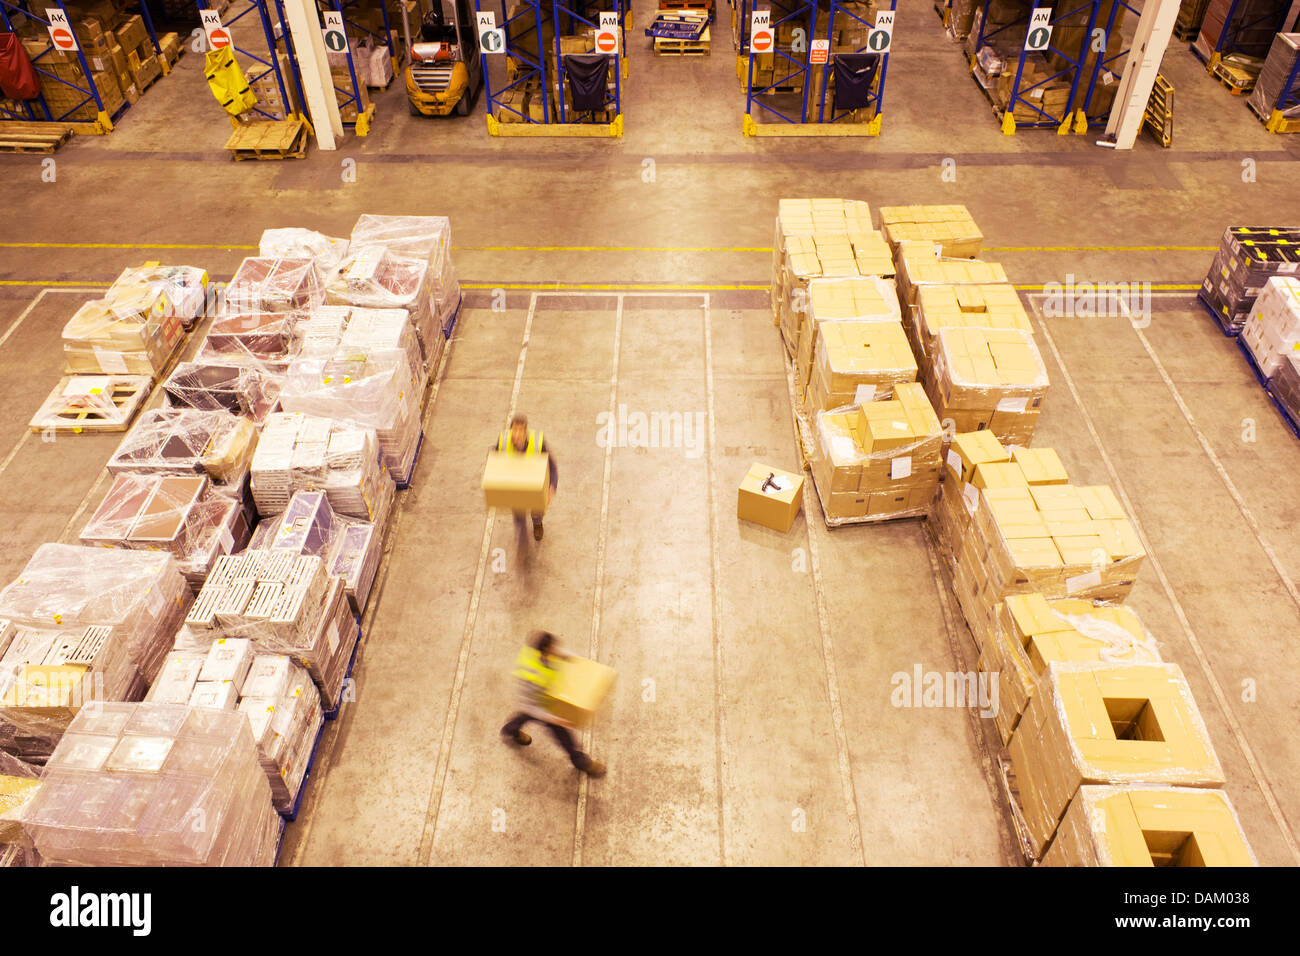 Blurred view of workers carrying boxes in warehouse - Stock Image